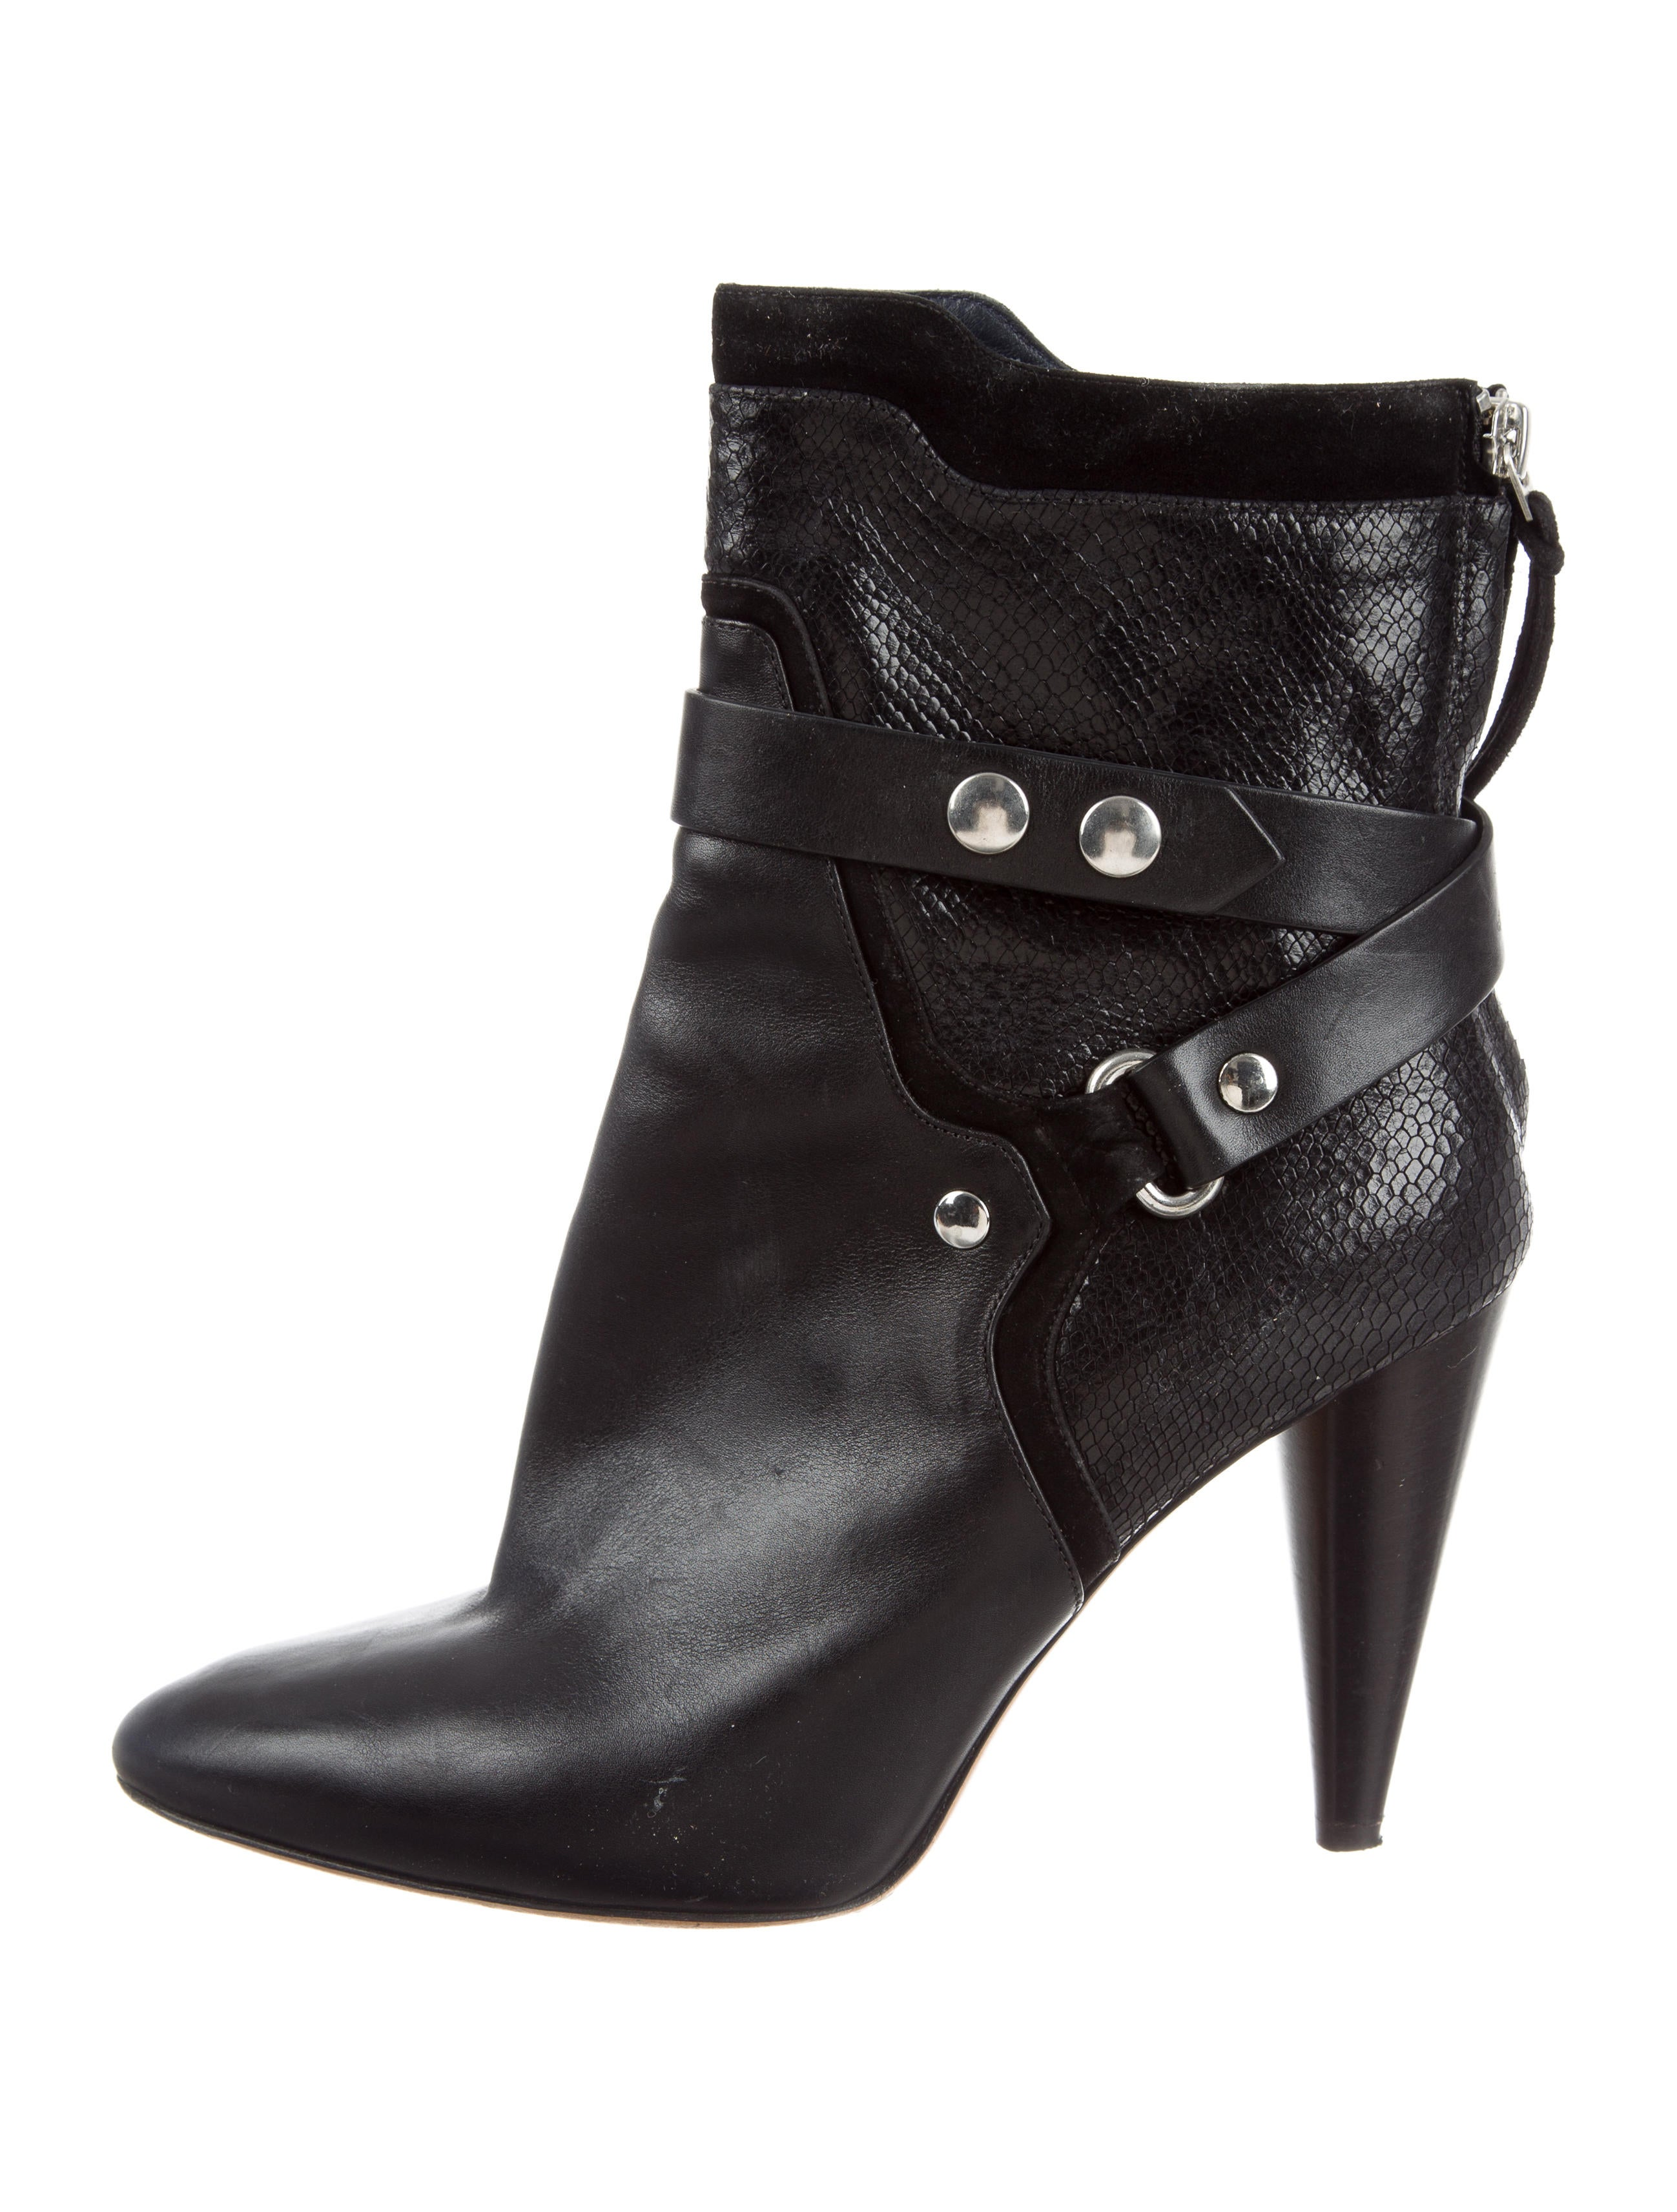 Isabel Marant Raya Pointed-Toe Booties cost high quality cheap price nicekicks for sale clearance exclusive new styles for sale srZzJNXm9P